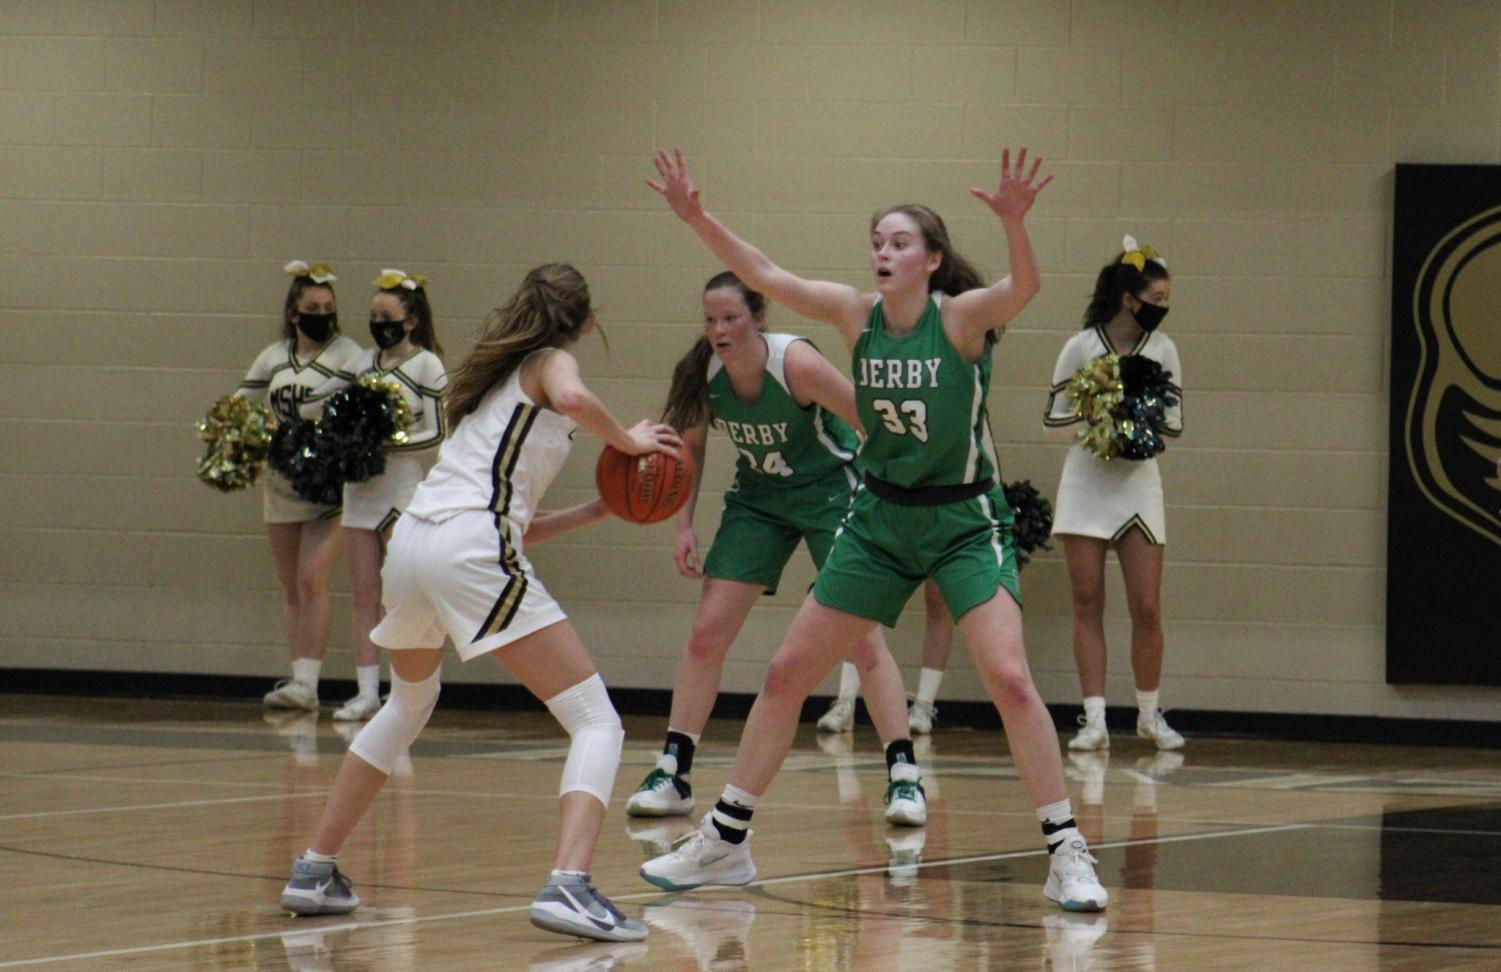 Varsity+Basketball+at+Maize+South+%28photos+by+Hailey+Jeffery%29